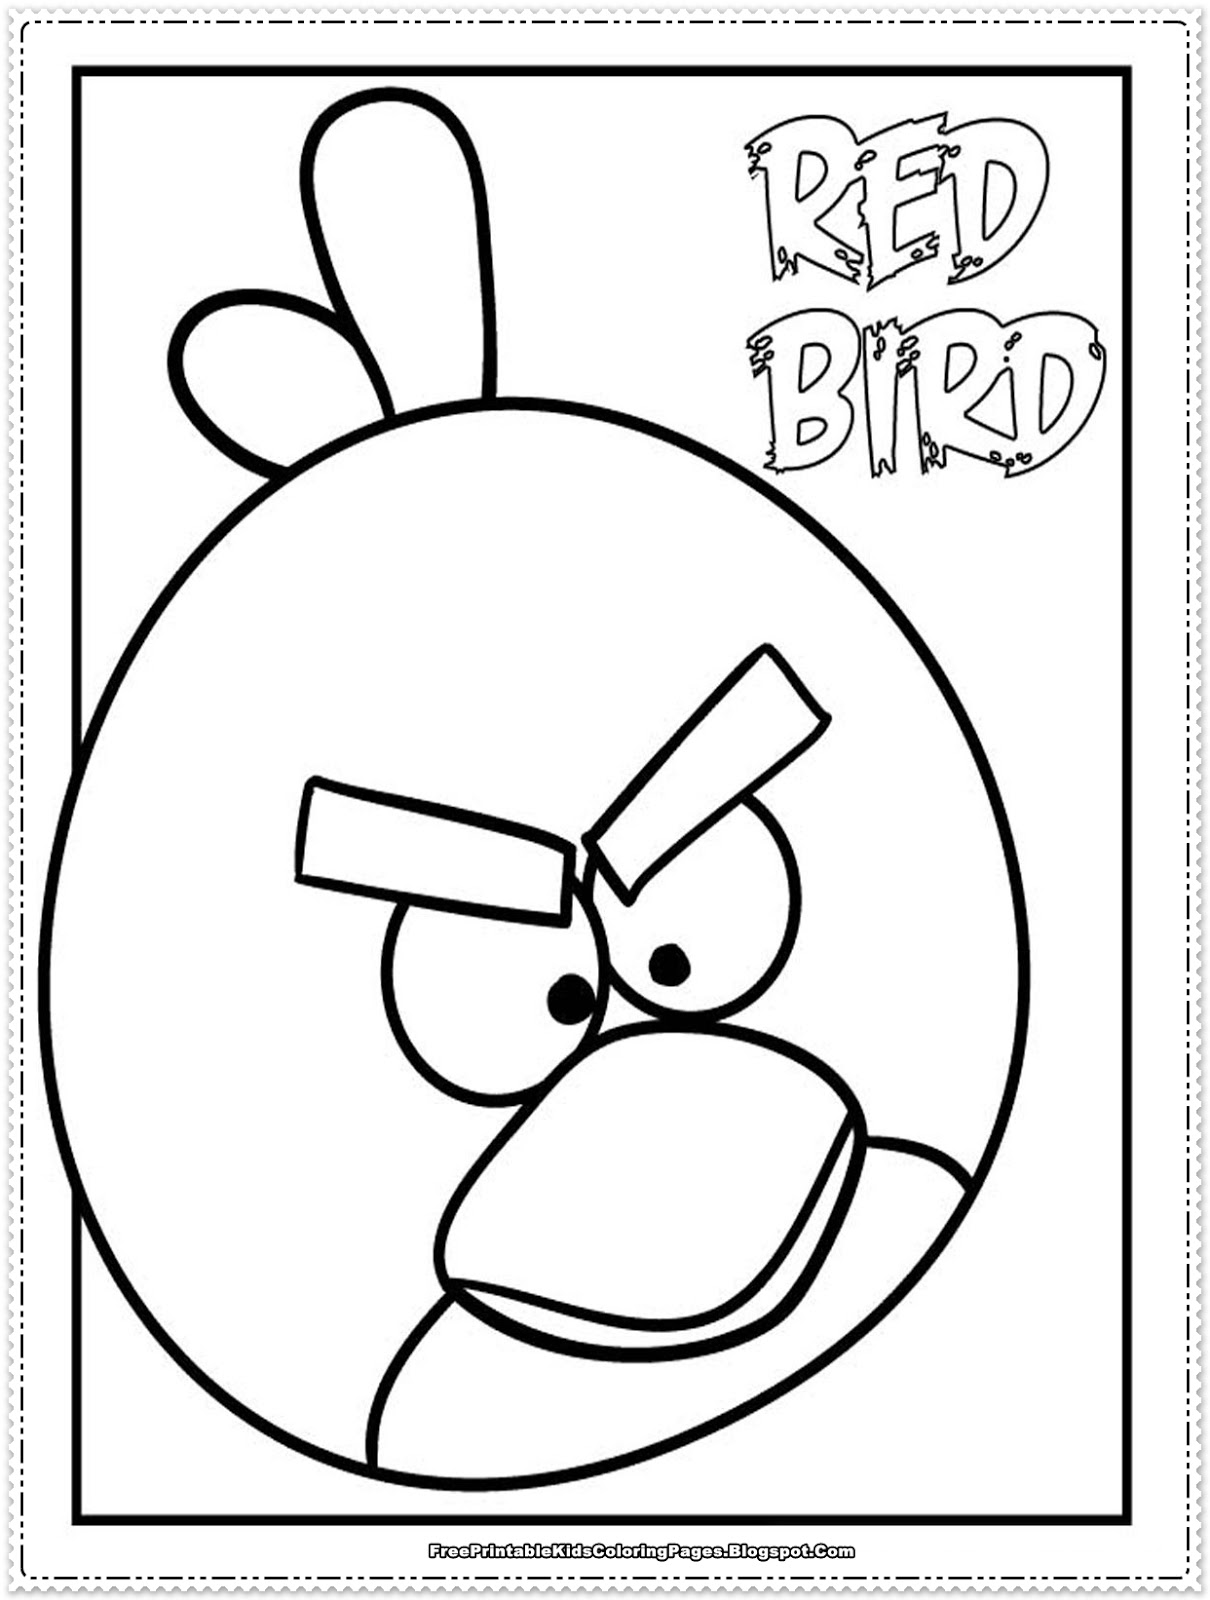 coloring pages for angry birds kids page angry birds coloring pages pages coloring angry birds for